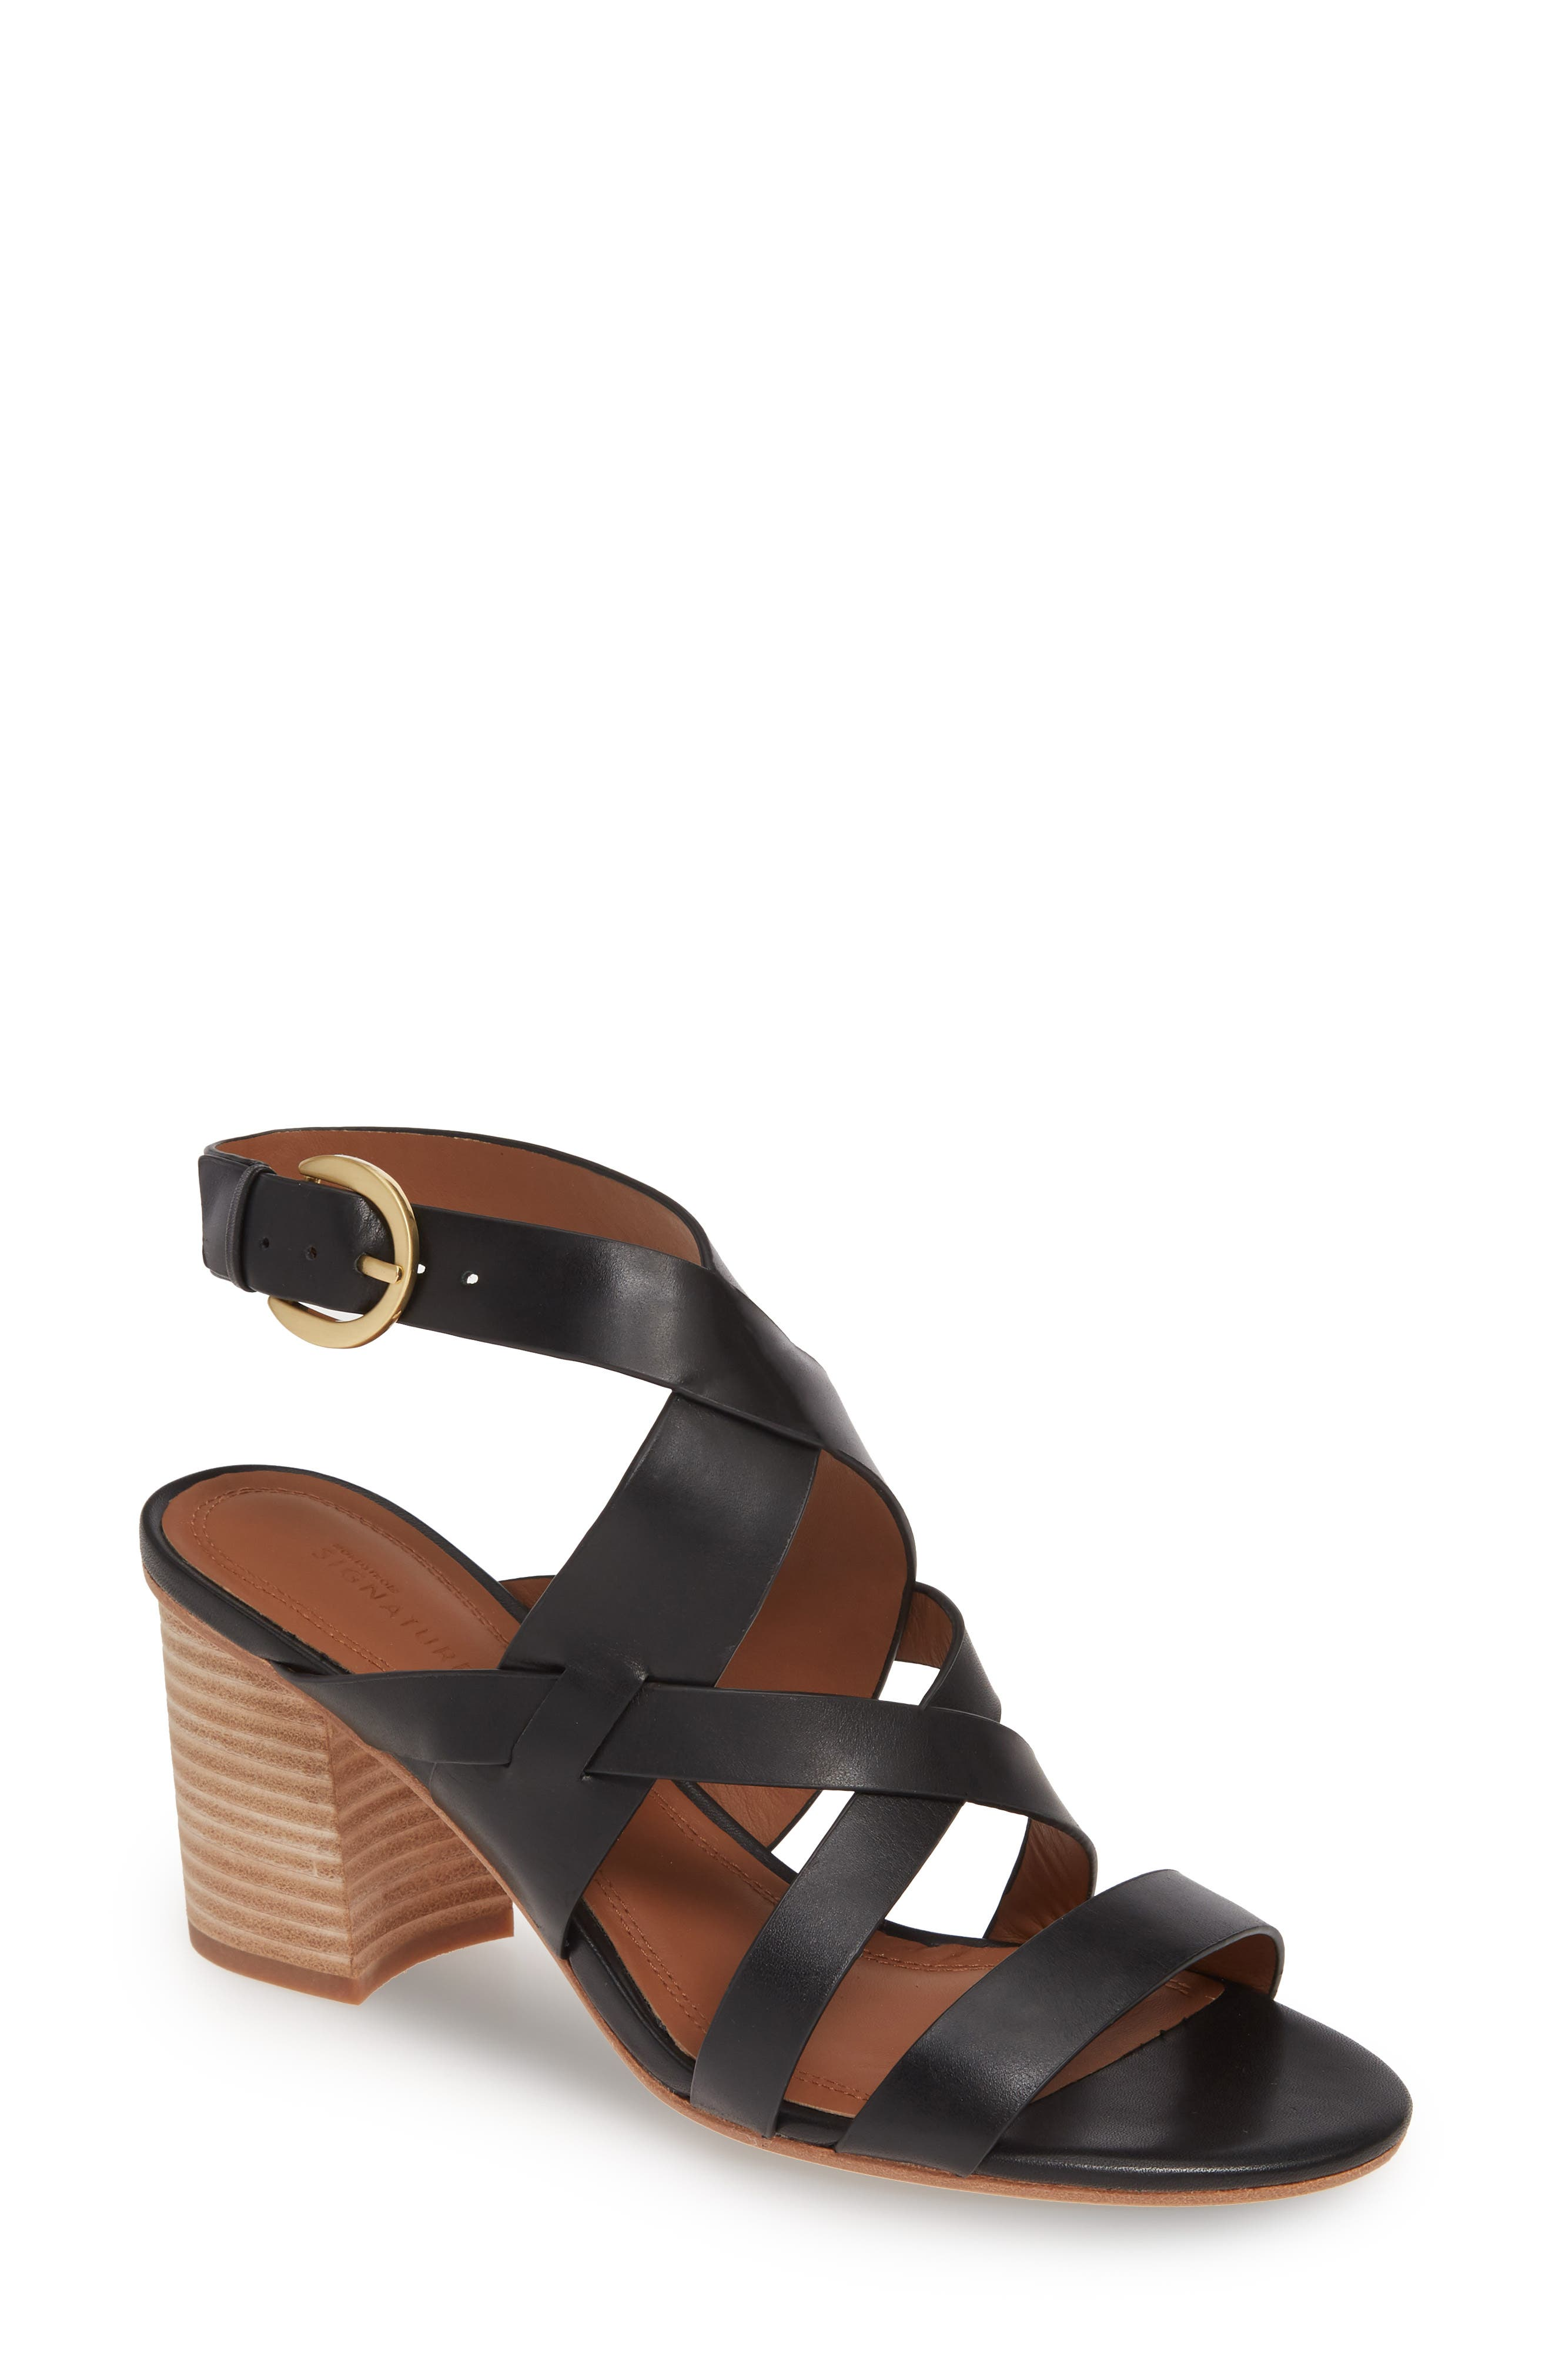 Strappy Slingback Sandal by Nordstrom Signature